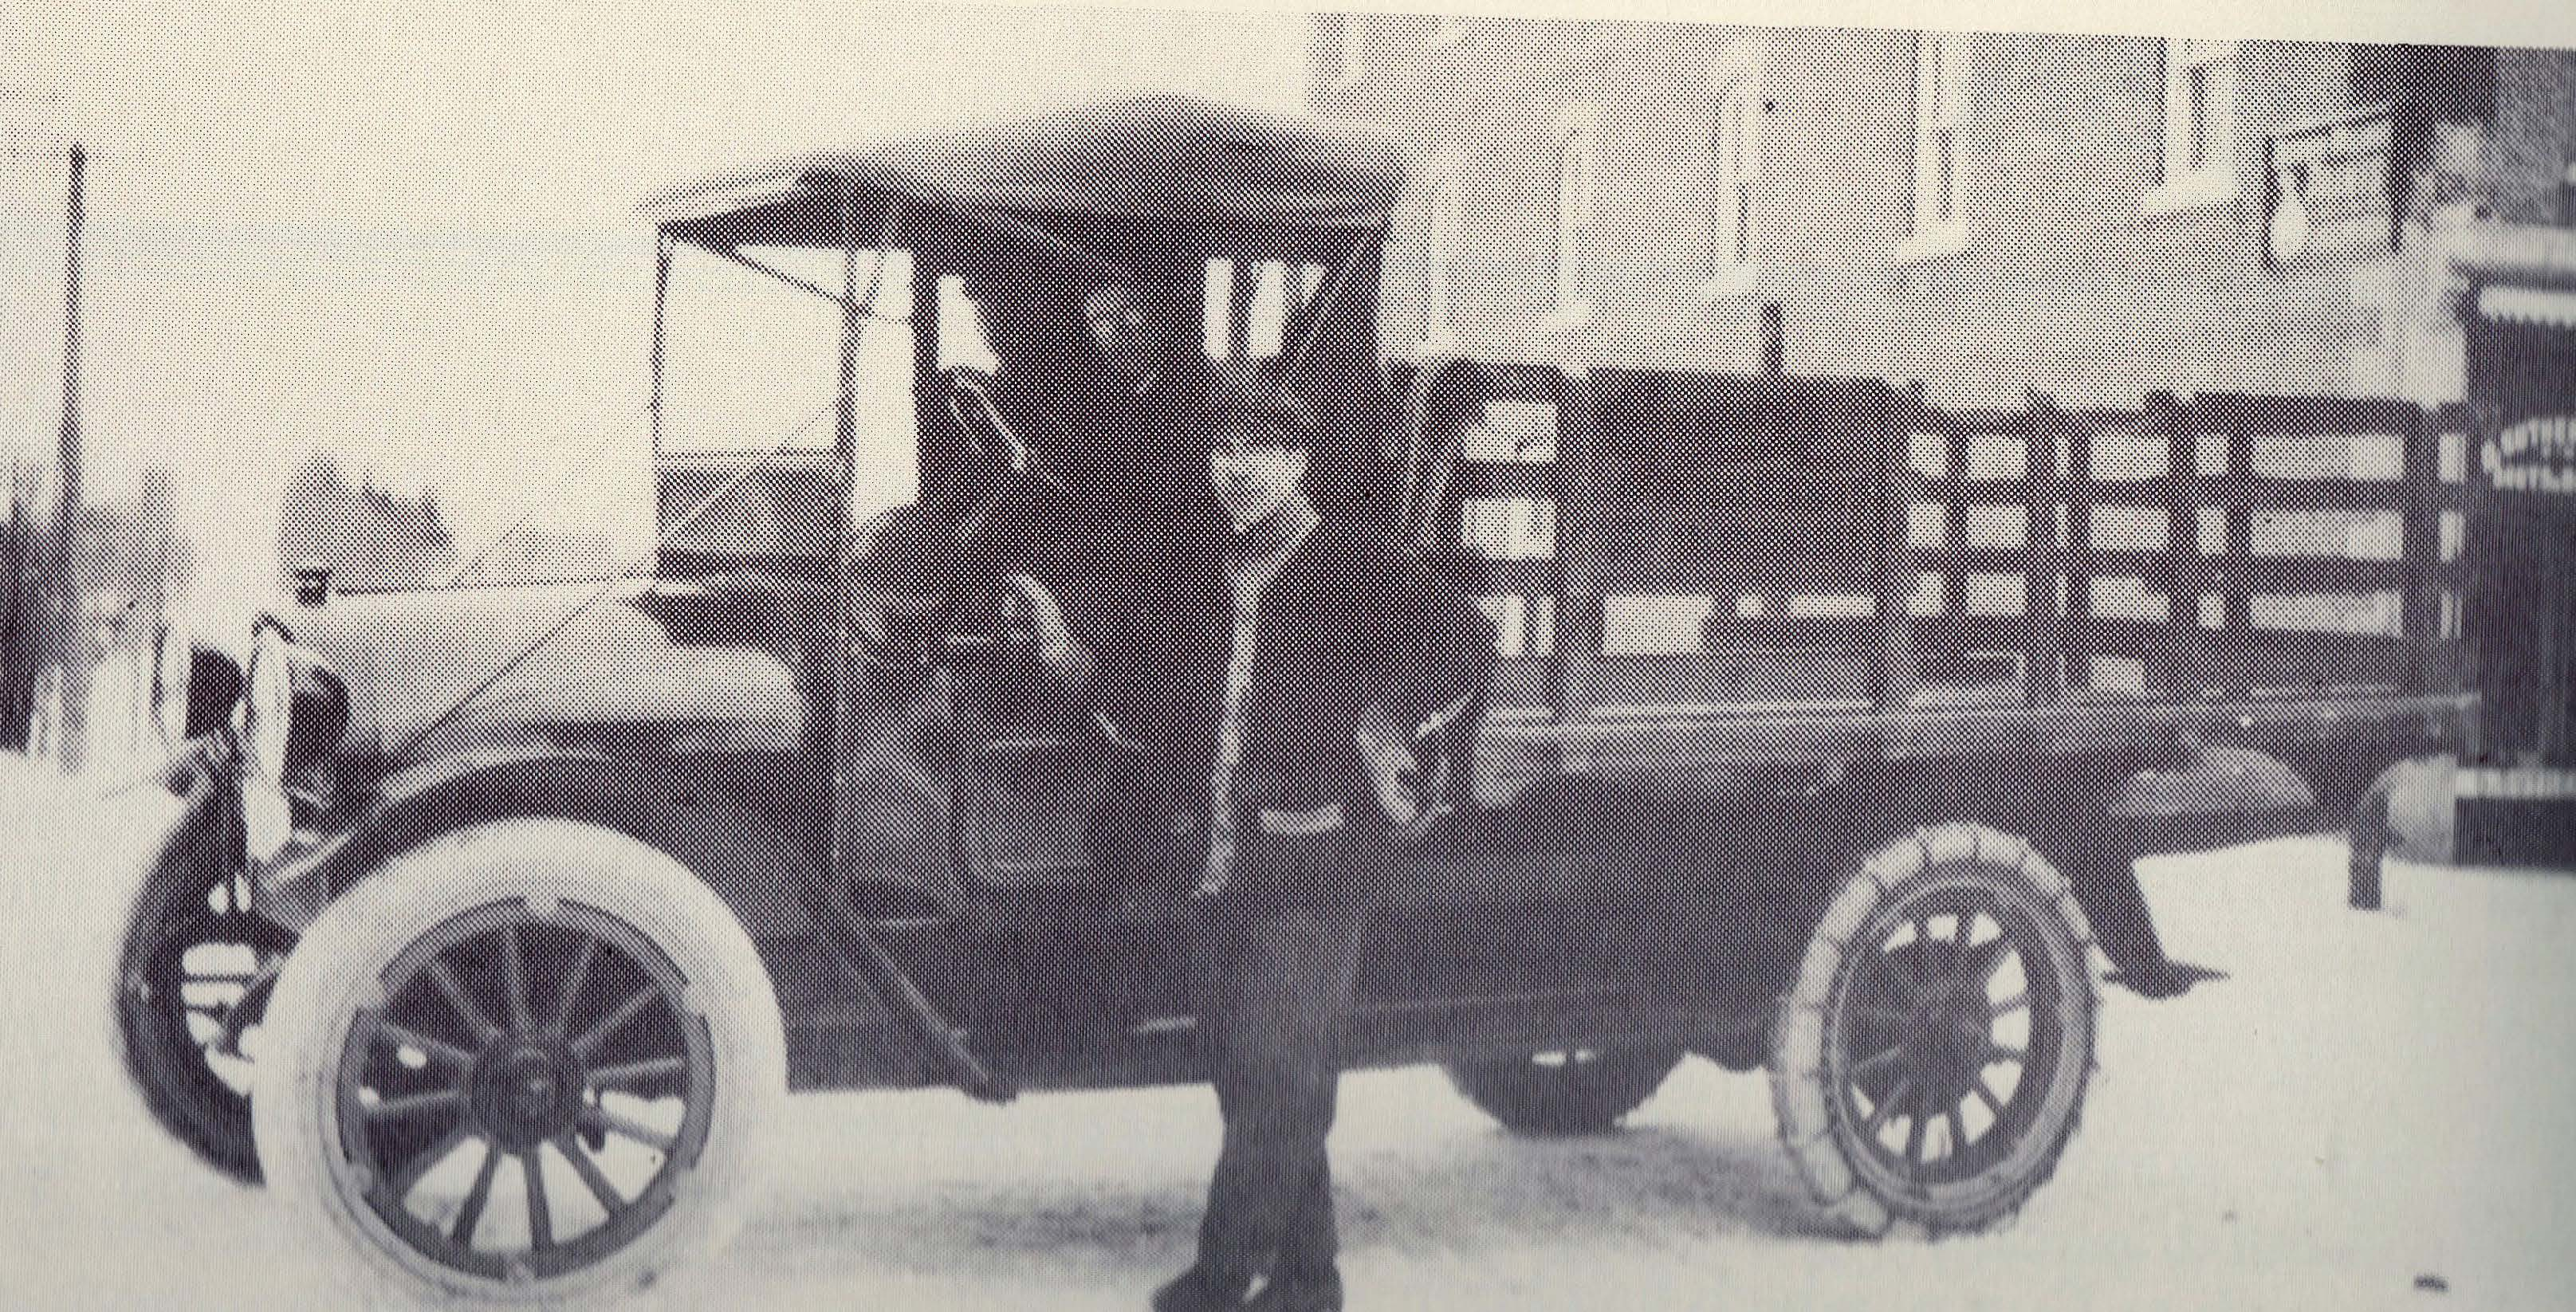 The first Reo transport truck in 1926